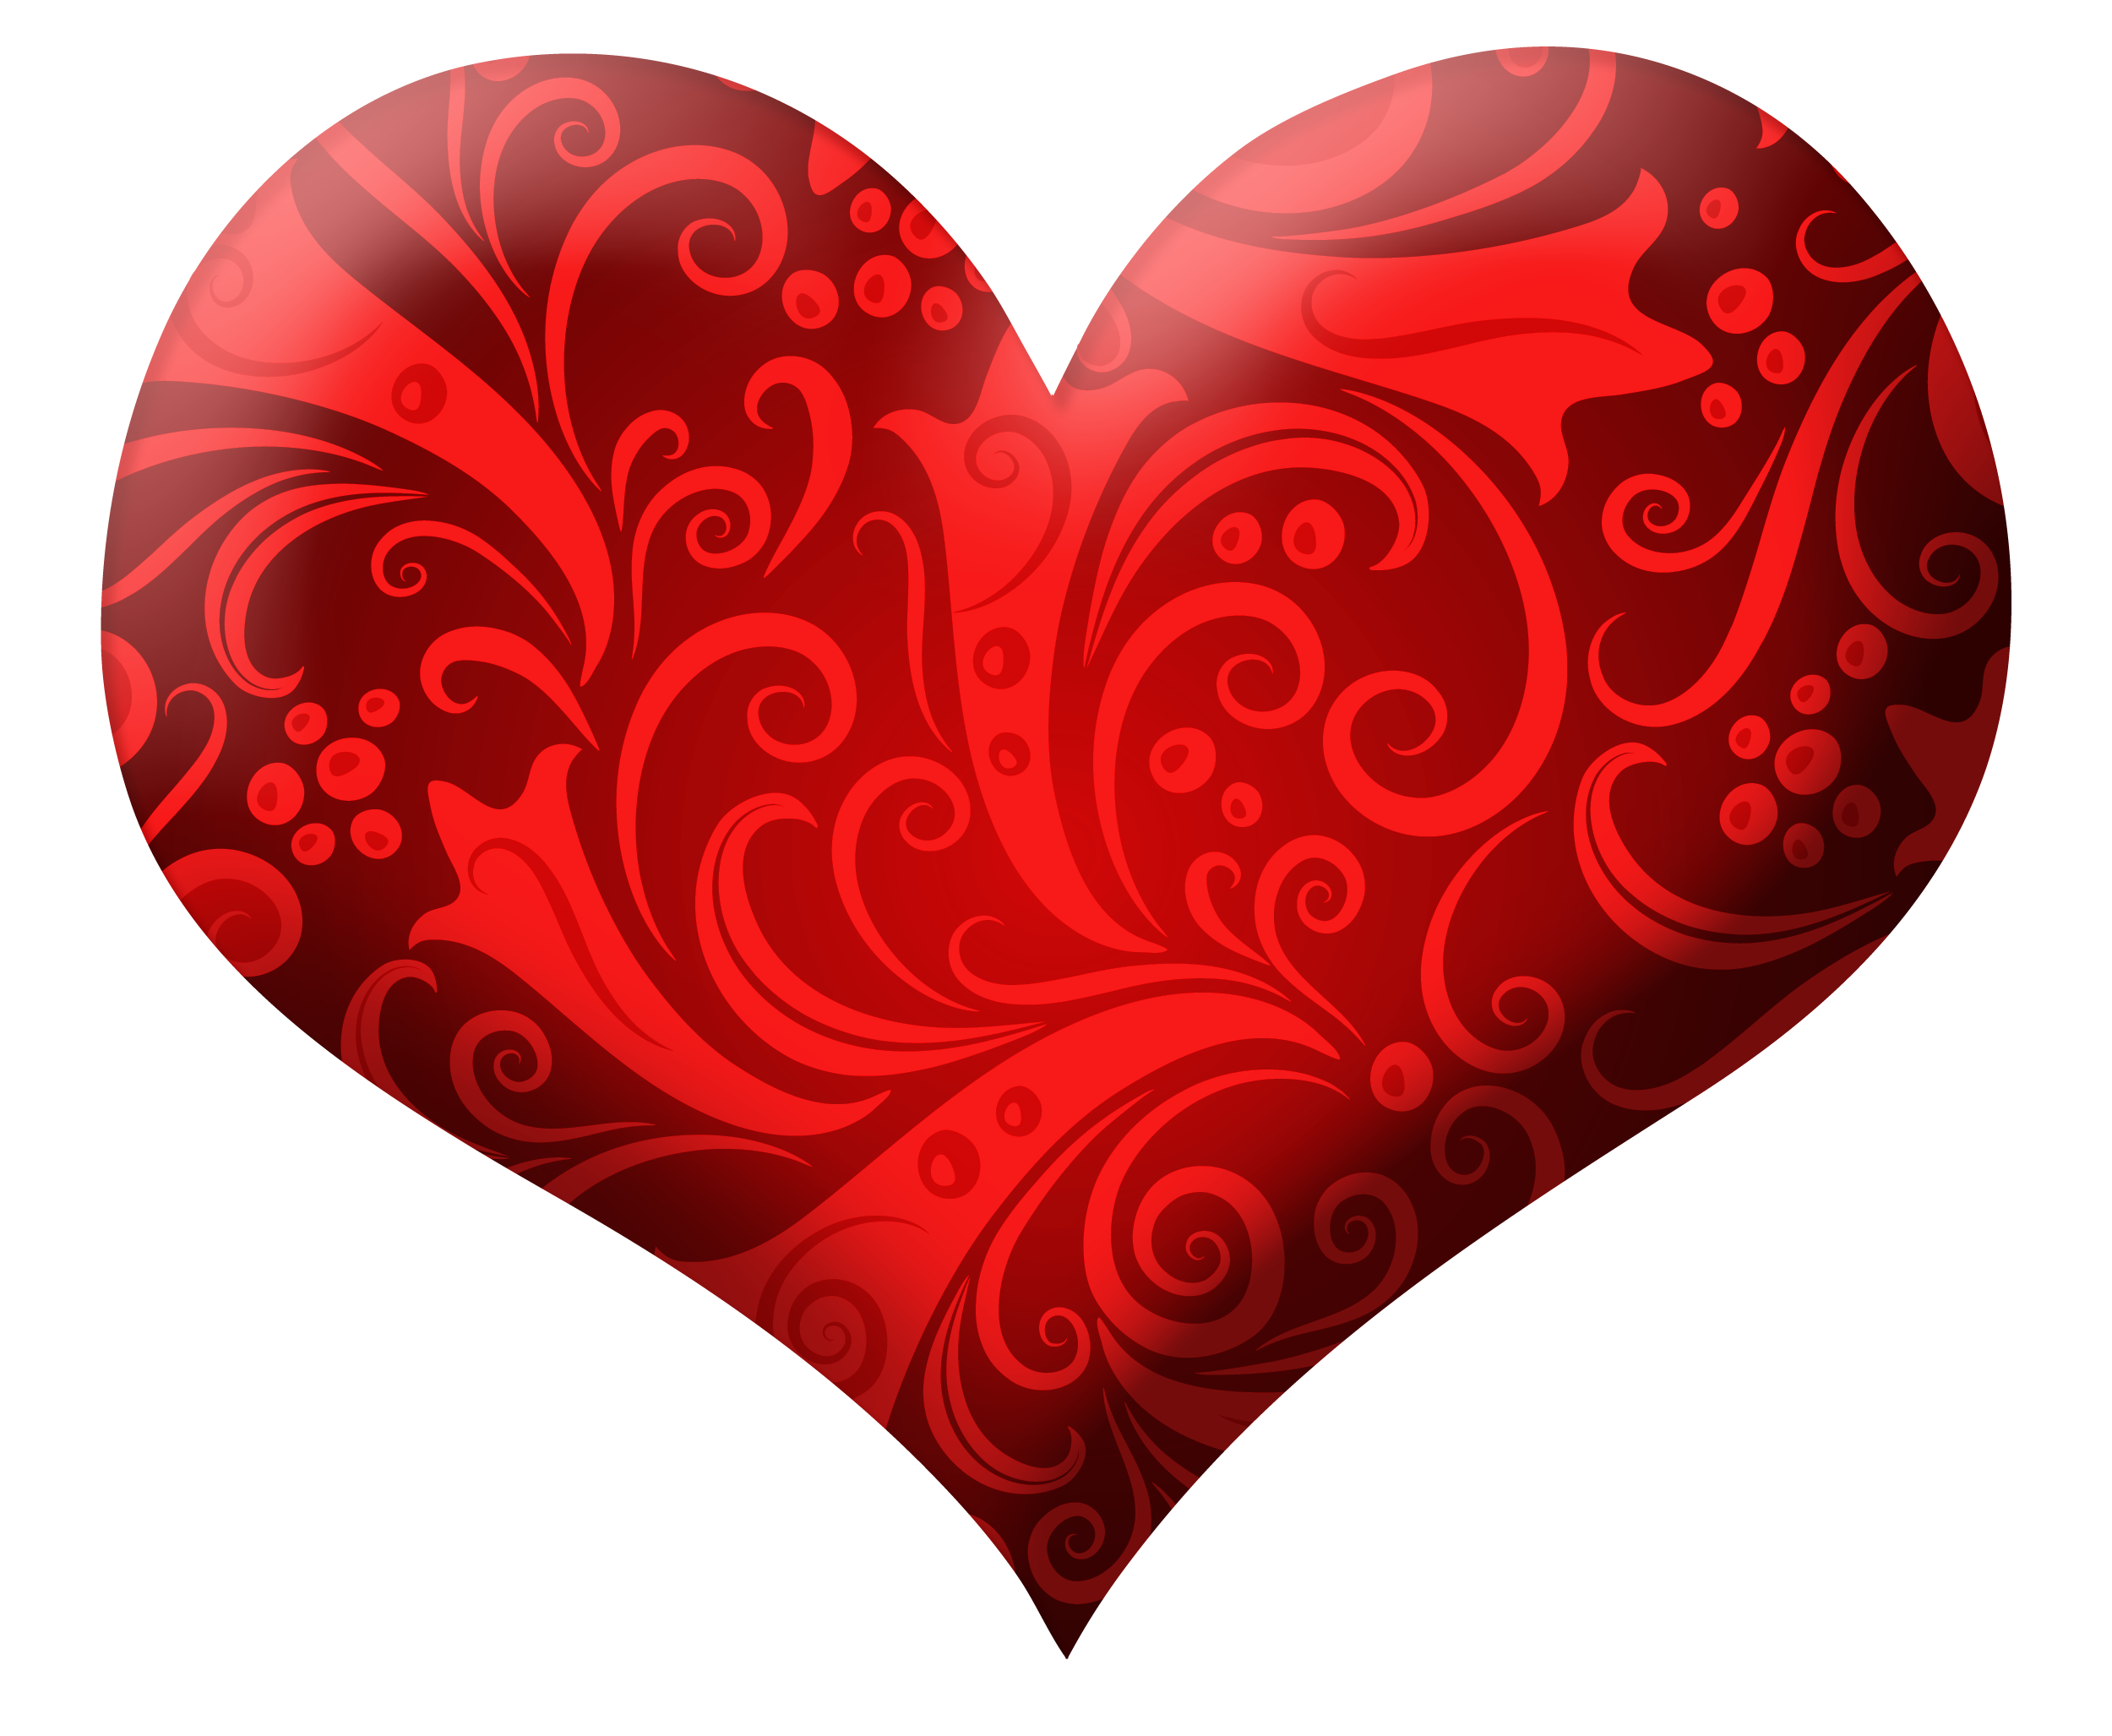 heart download clip art, beautiful #8088